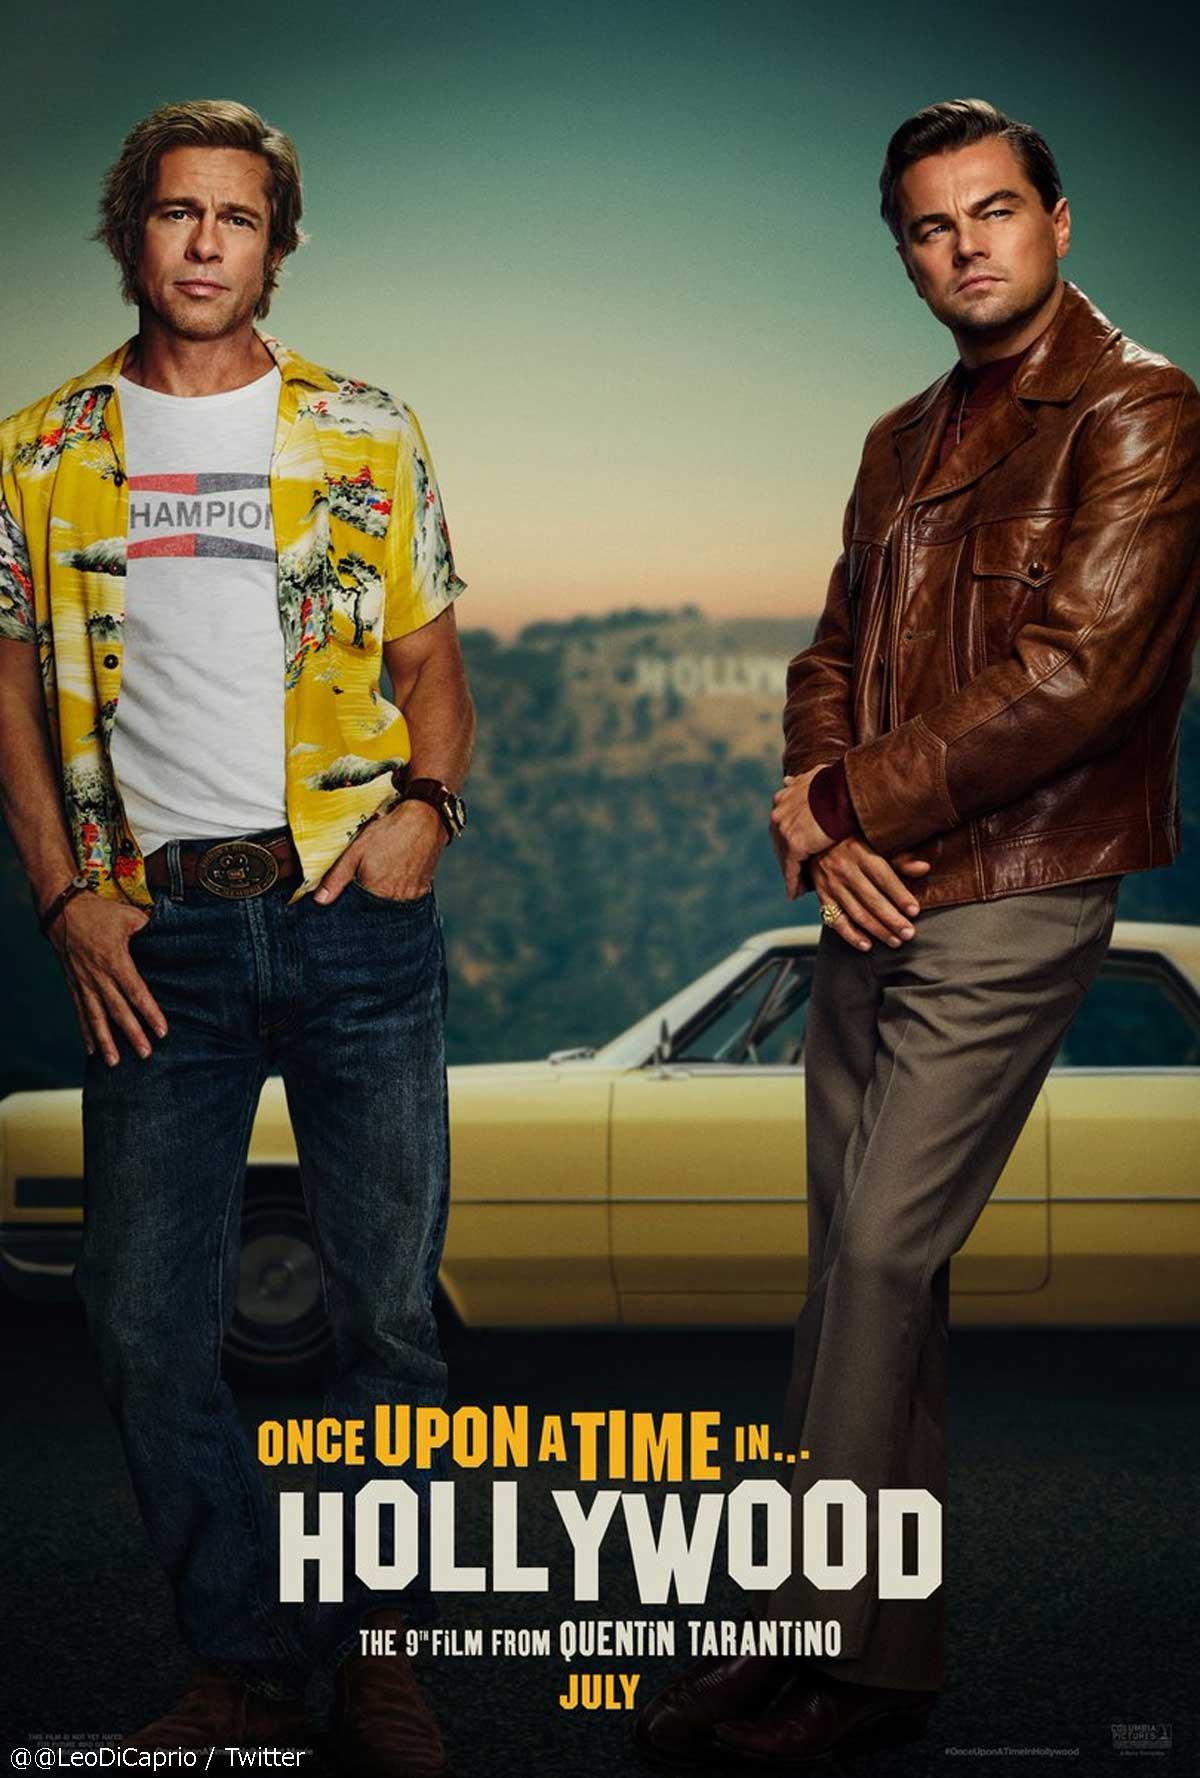 映画「Once Upon a Time in Hollywood」の公式ポスター